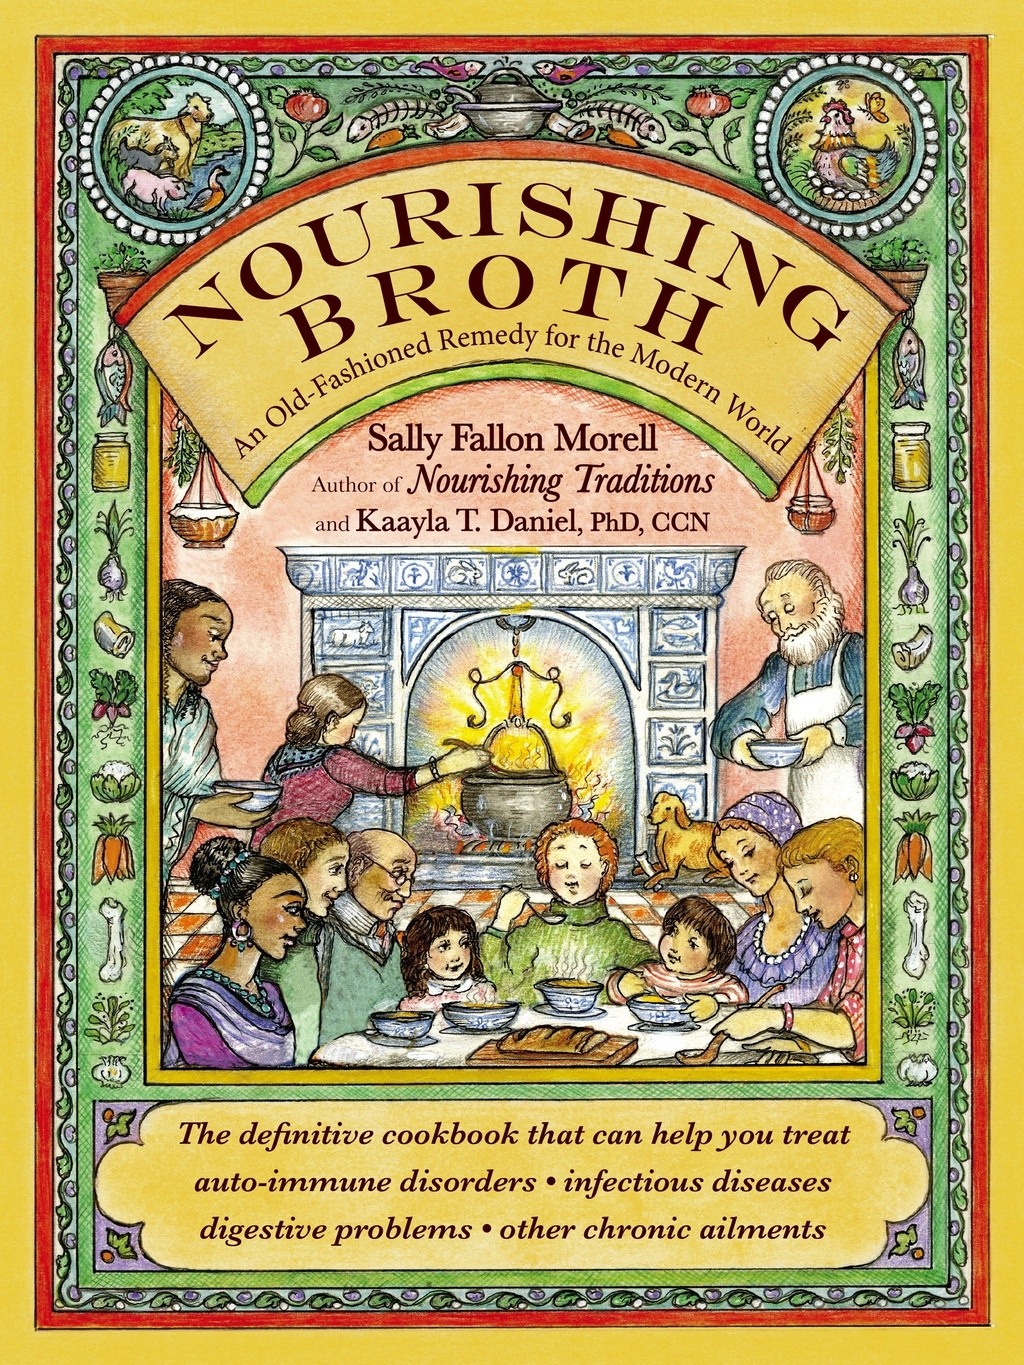 Nourishing Broth: An Old-Fashioned Remedy for the Modern World by Sally Fallon Morell, ISBN: 9781455529223